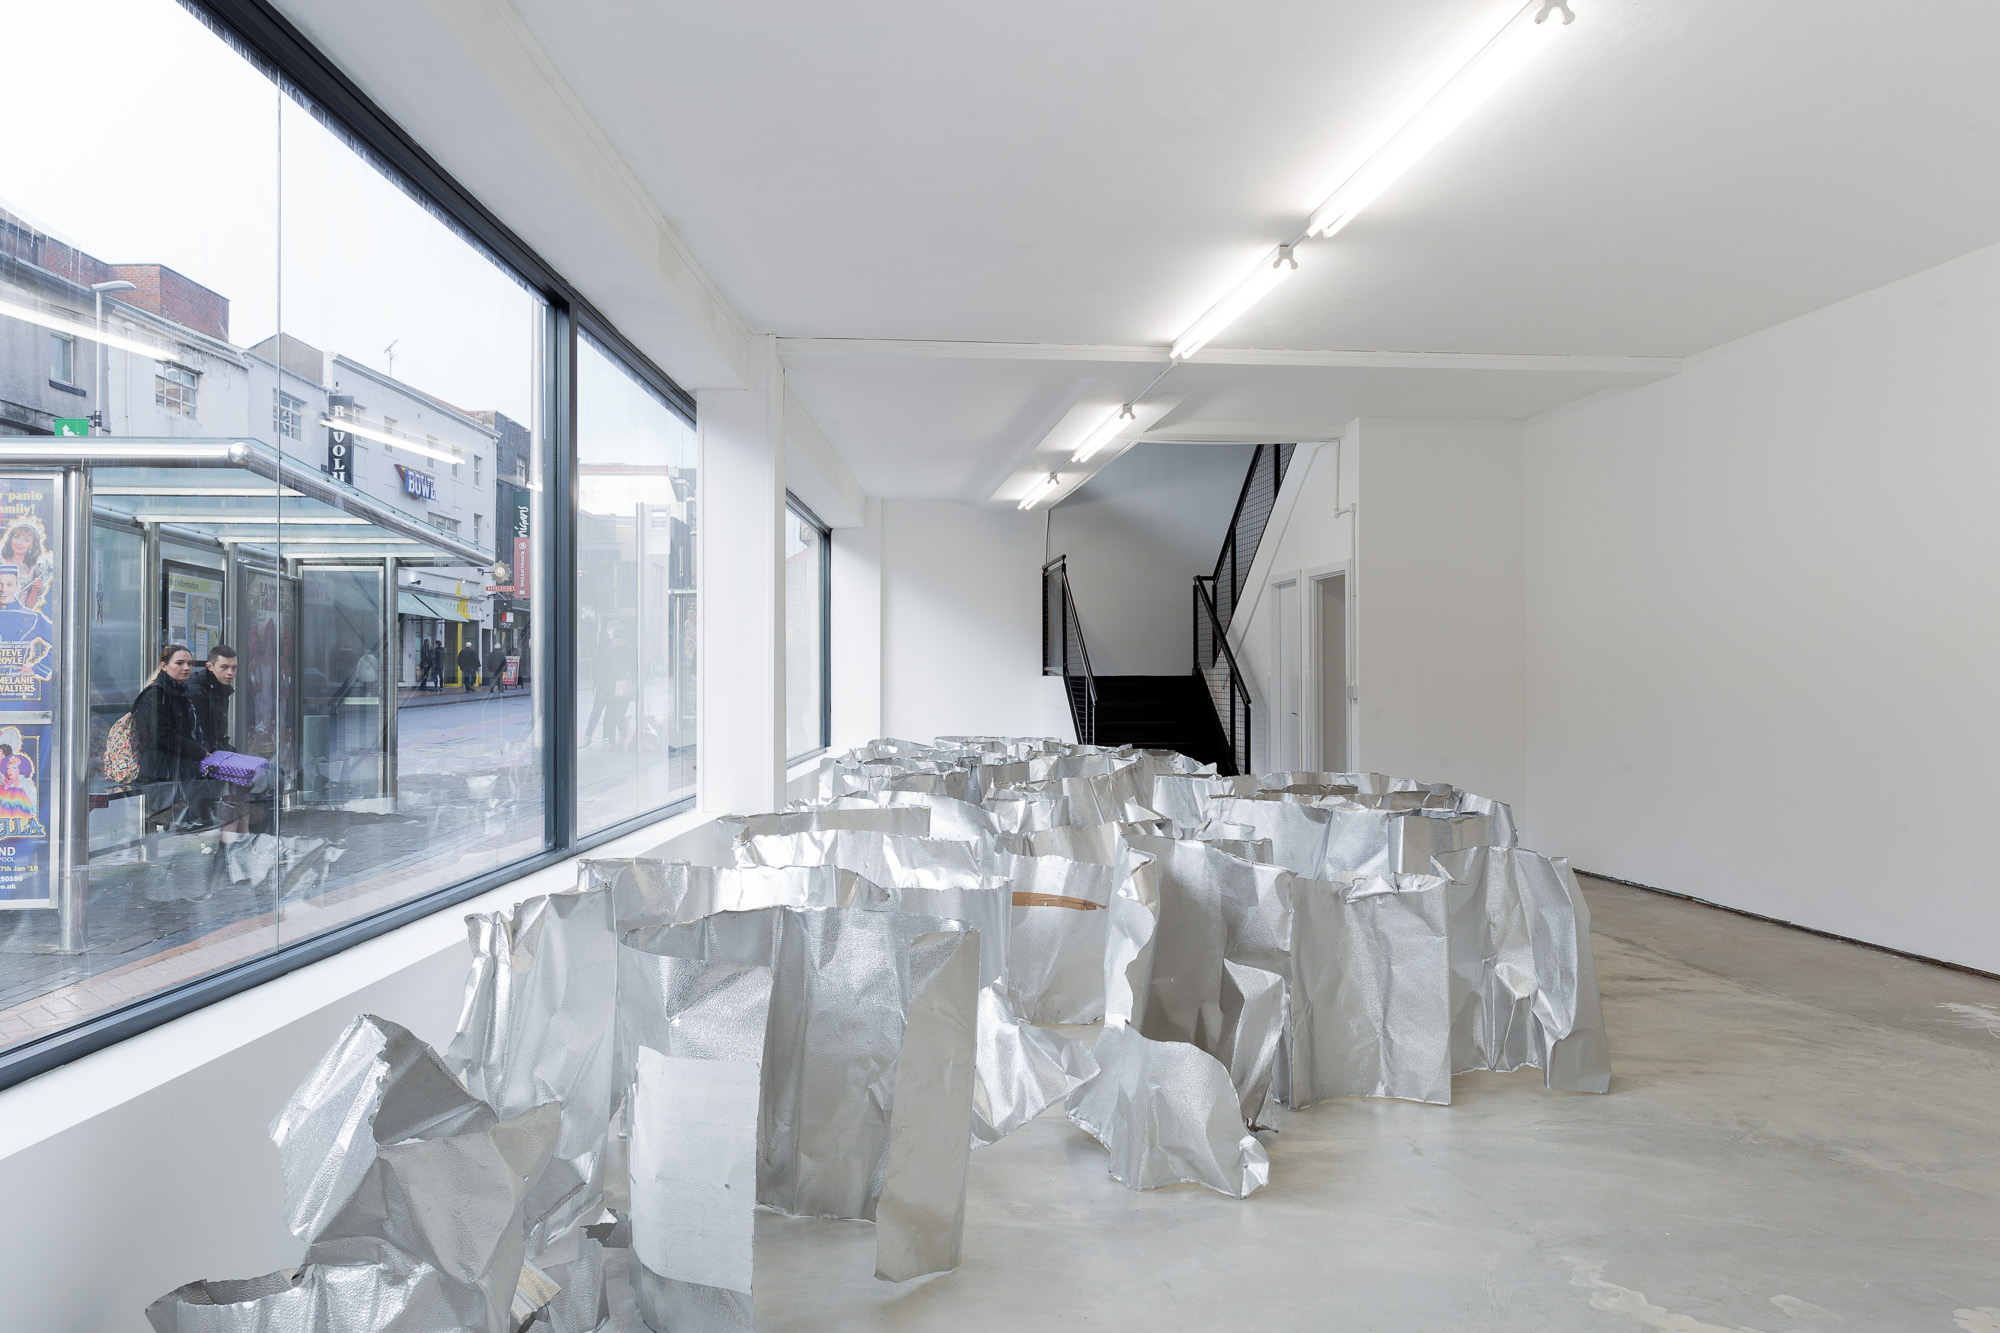 Aluminium stucco. 80 x 50 x 100cm. Dimensions variable. Installation at ICW Blackpool. Image credits: Jules Lister